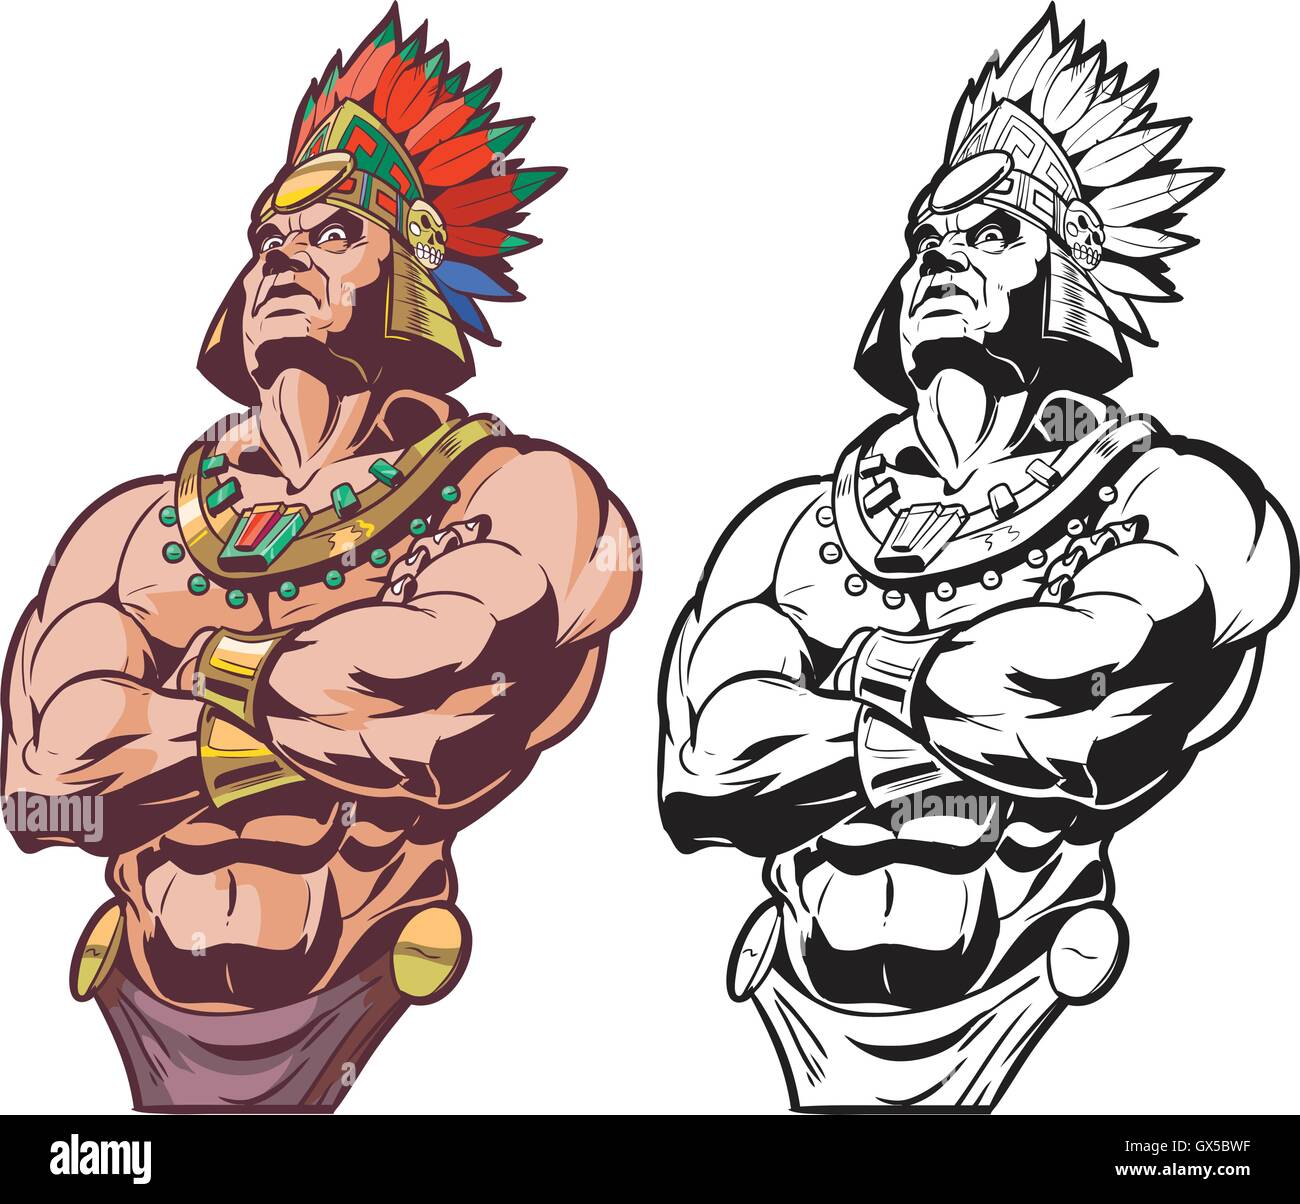 Vector cartoon clip art illustration bust of an Inca or Mayan or Aztec warrior or chief mascot looking tough and - Stock Image